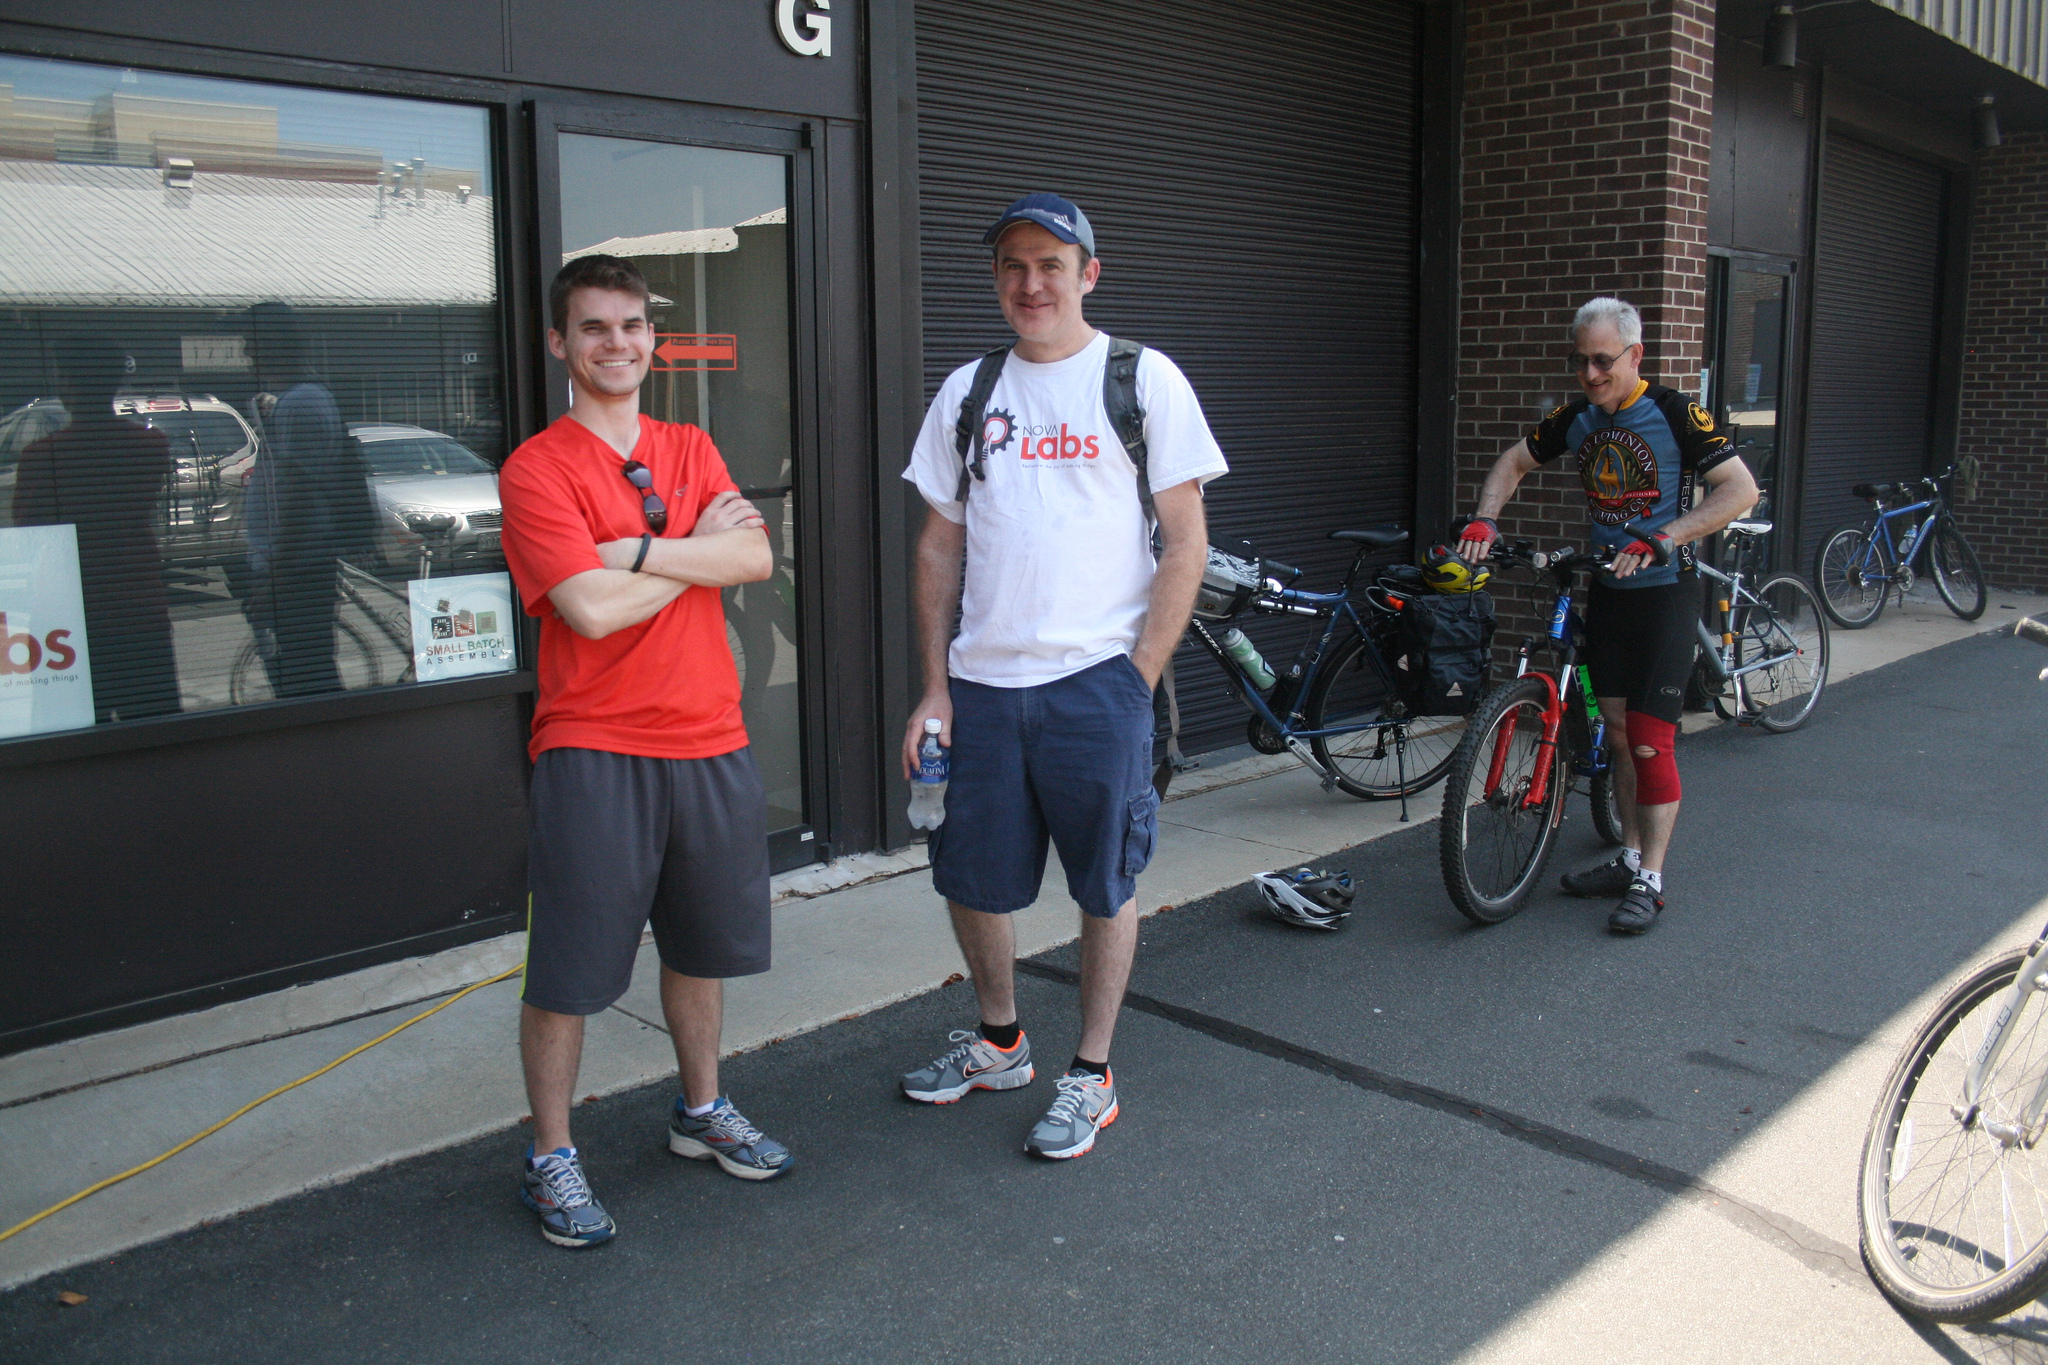 Bike Riders Enjoy Great Weather, Fun Games at the 1st Annual Nova Labs UAV Team Fundraiser